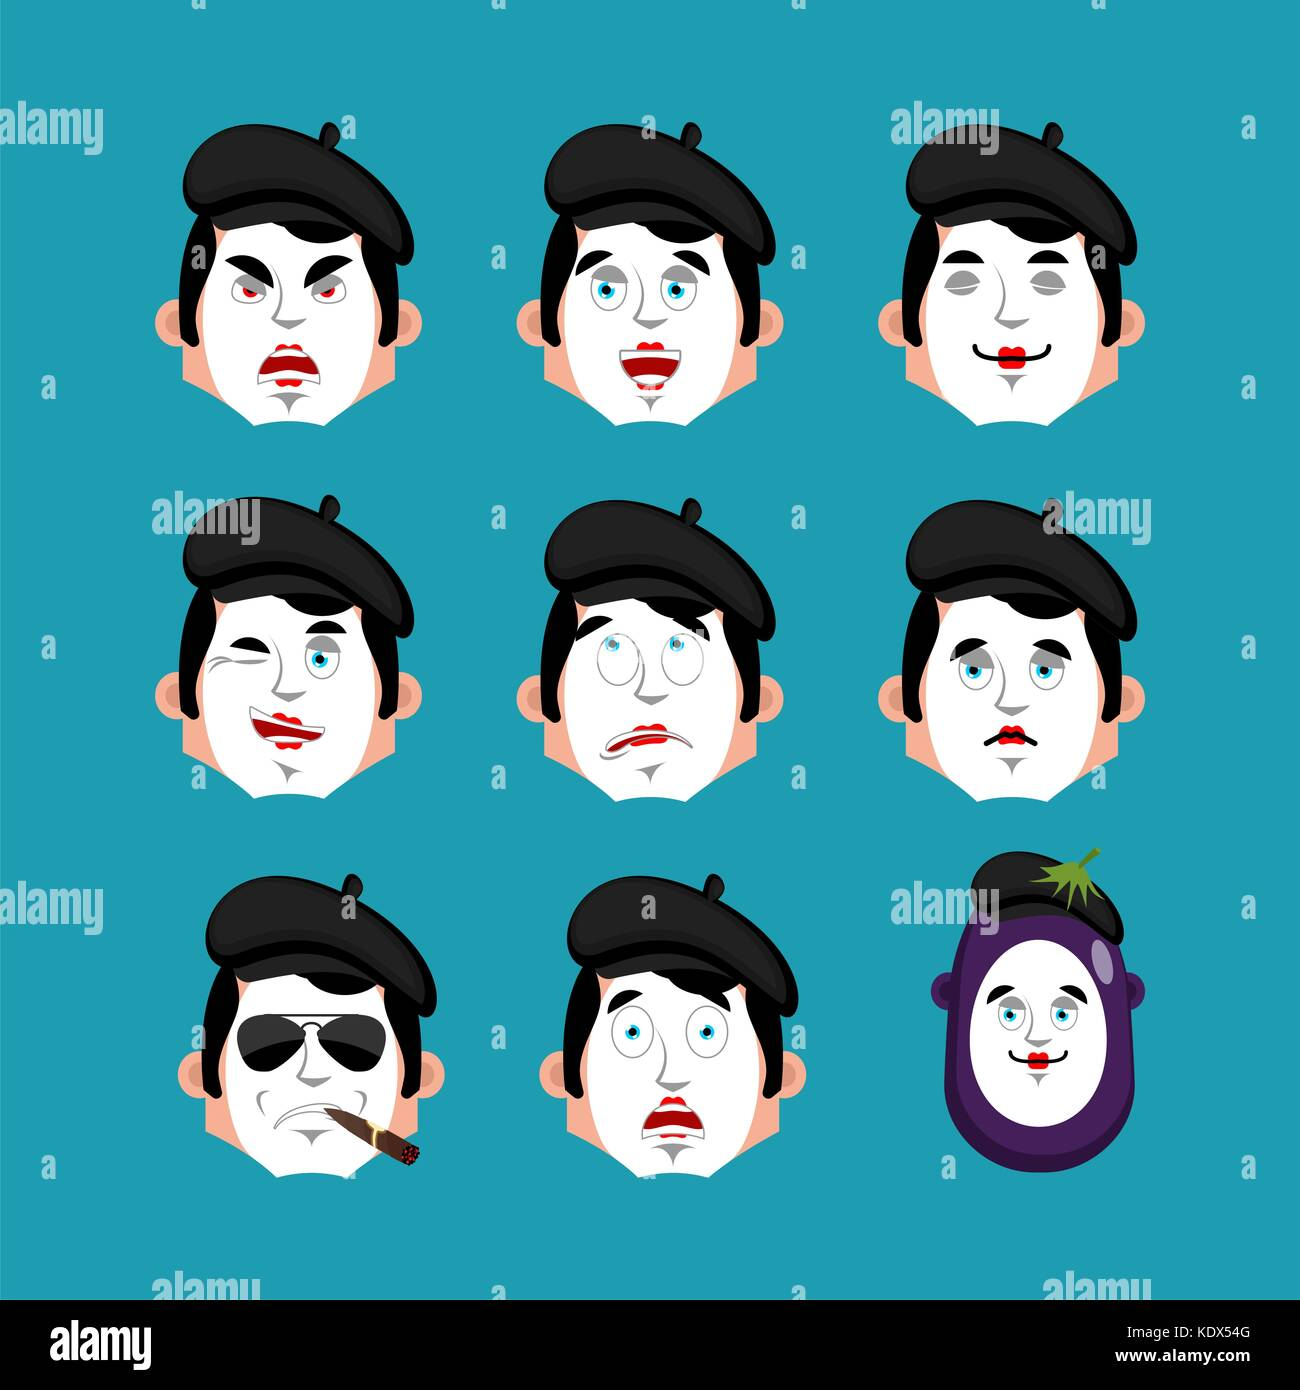 Mime face set. sleeping and evil emotion avatar. bewildered and sad pantomime emoji. mimic fear and happy icon. Stock Vector